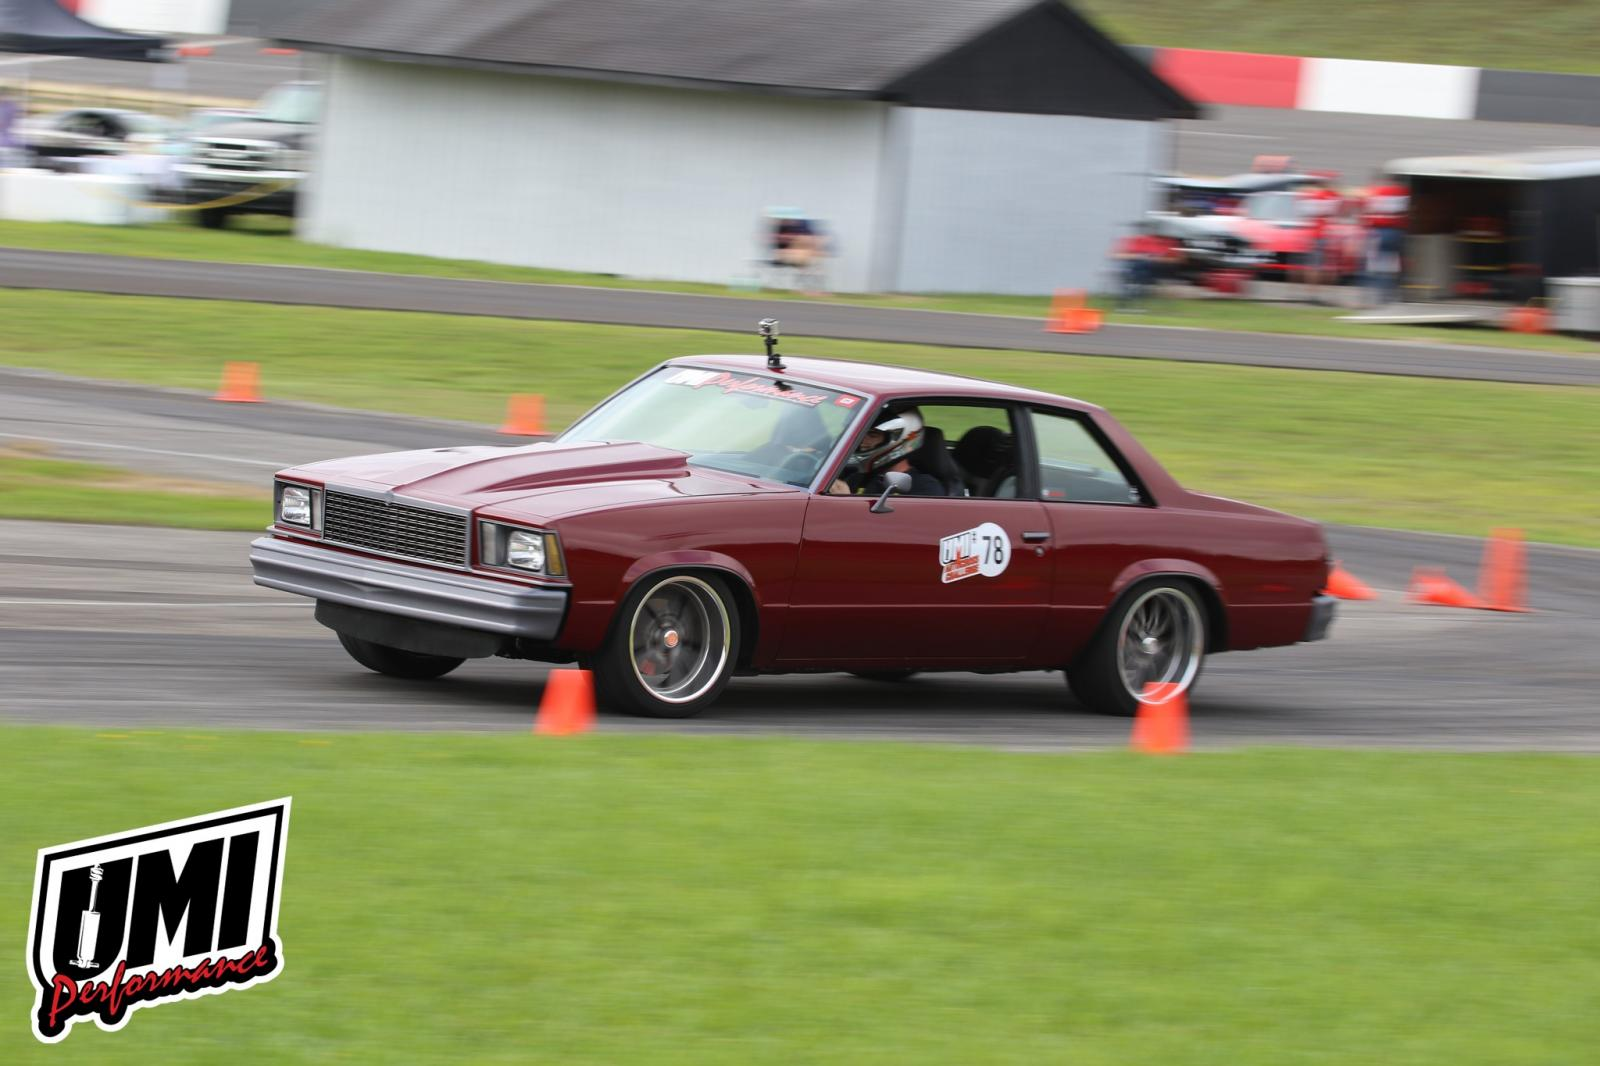 Name:  UMI Autocross and Cruise In 2018 063.jpg Views: 61 Size:  150.0 KB